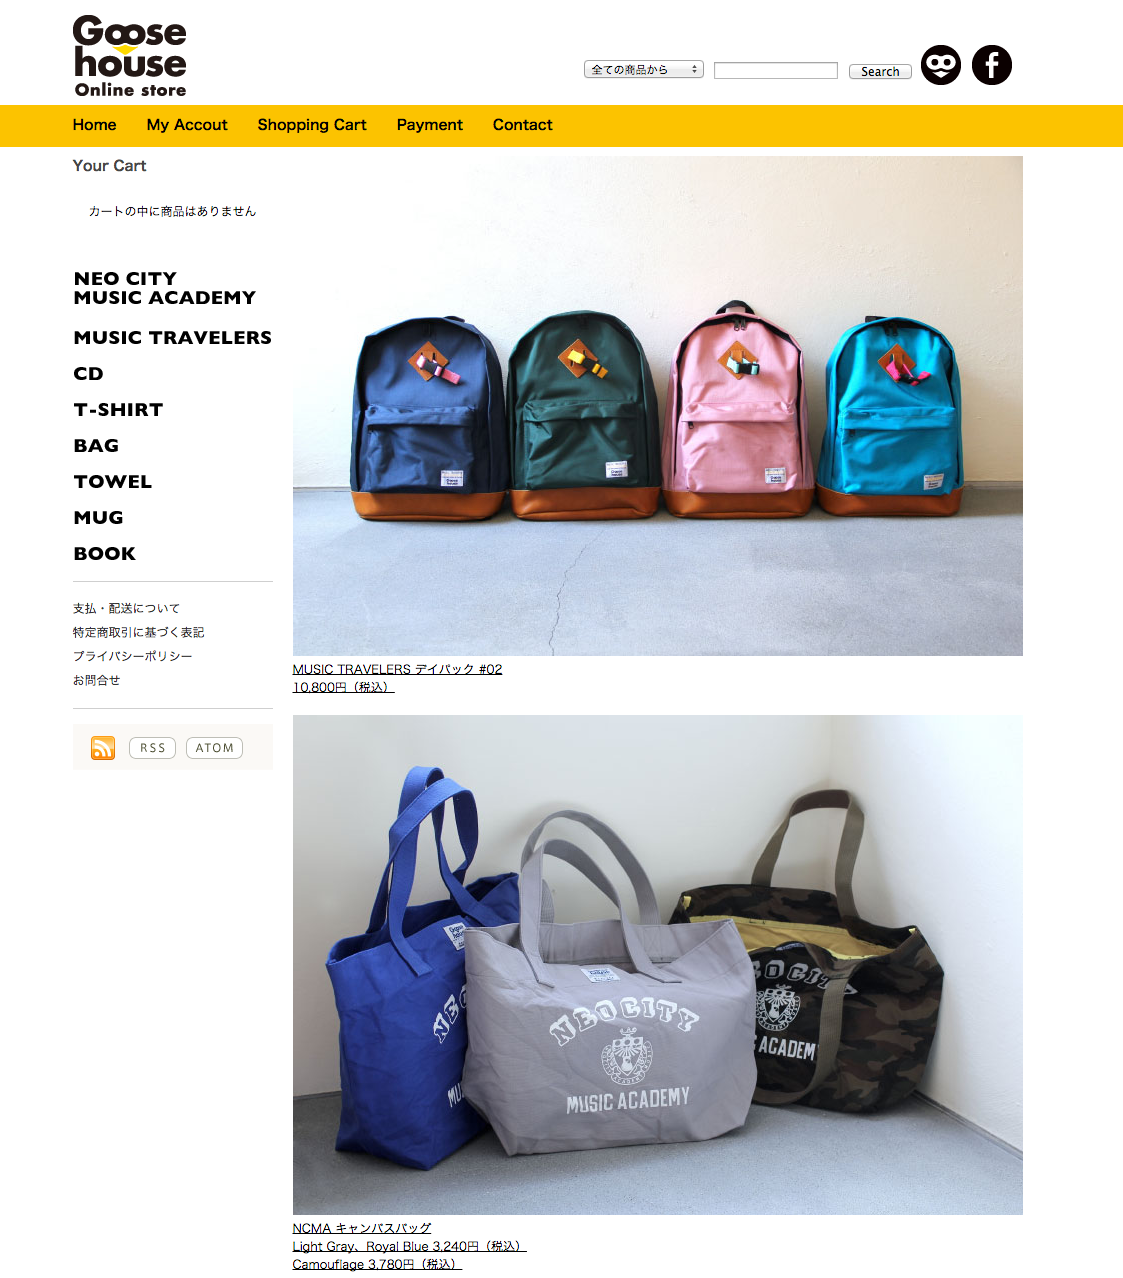 Goose house Online Store